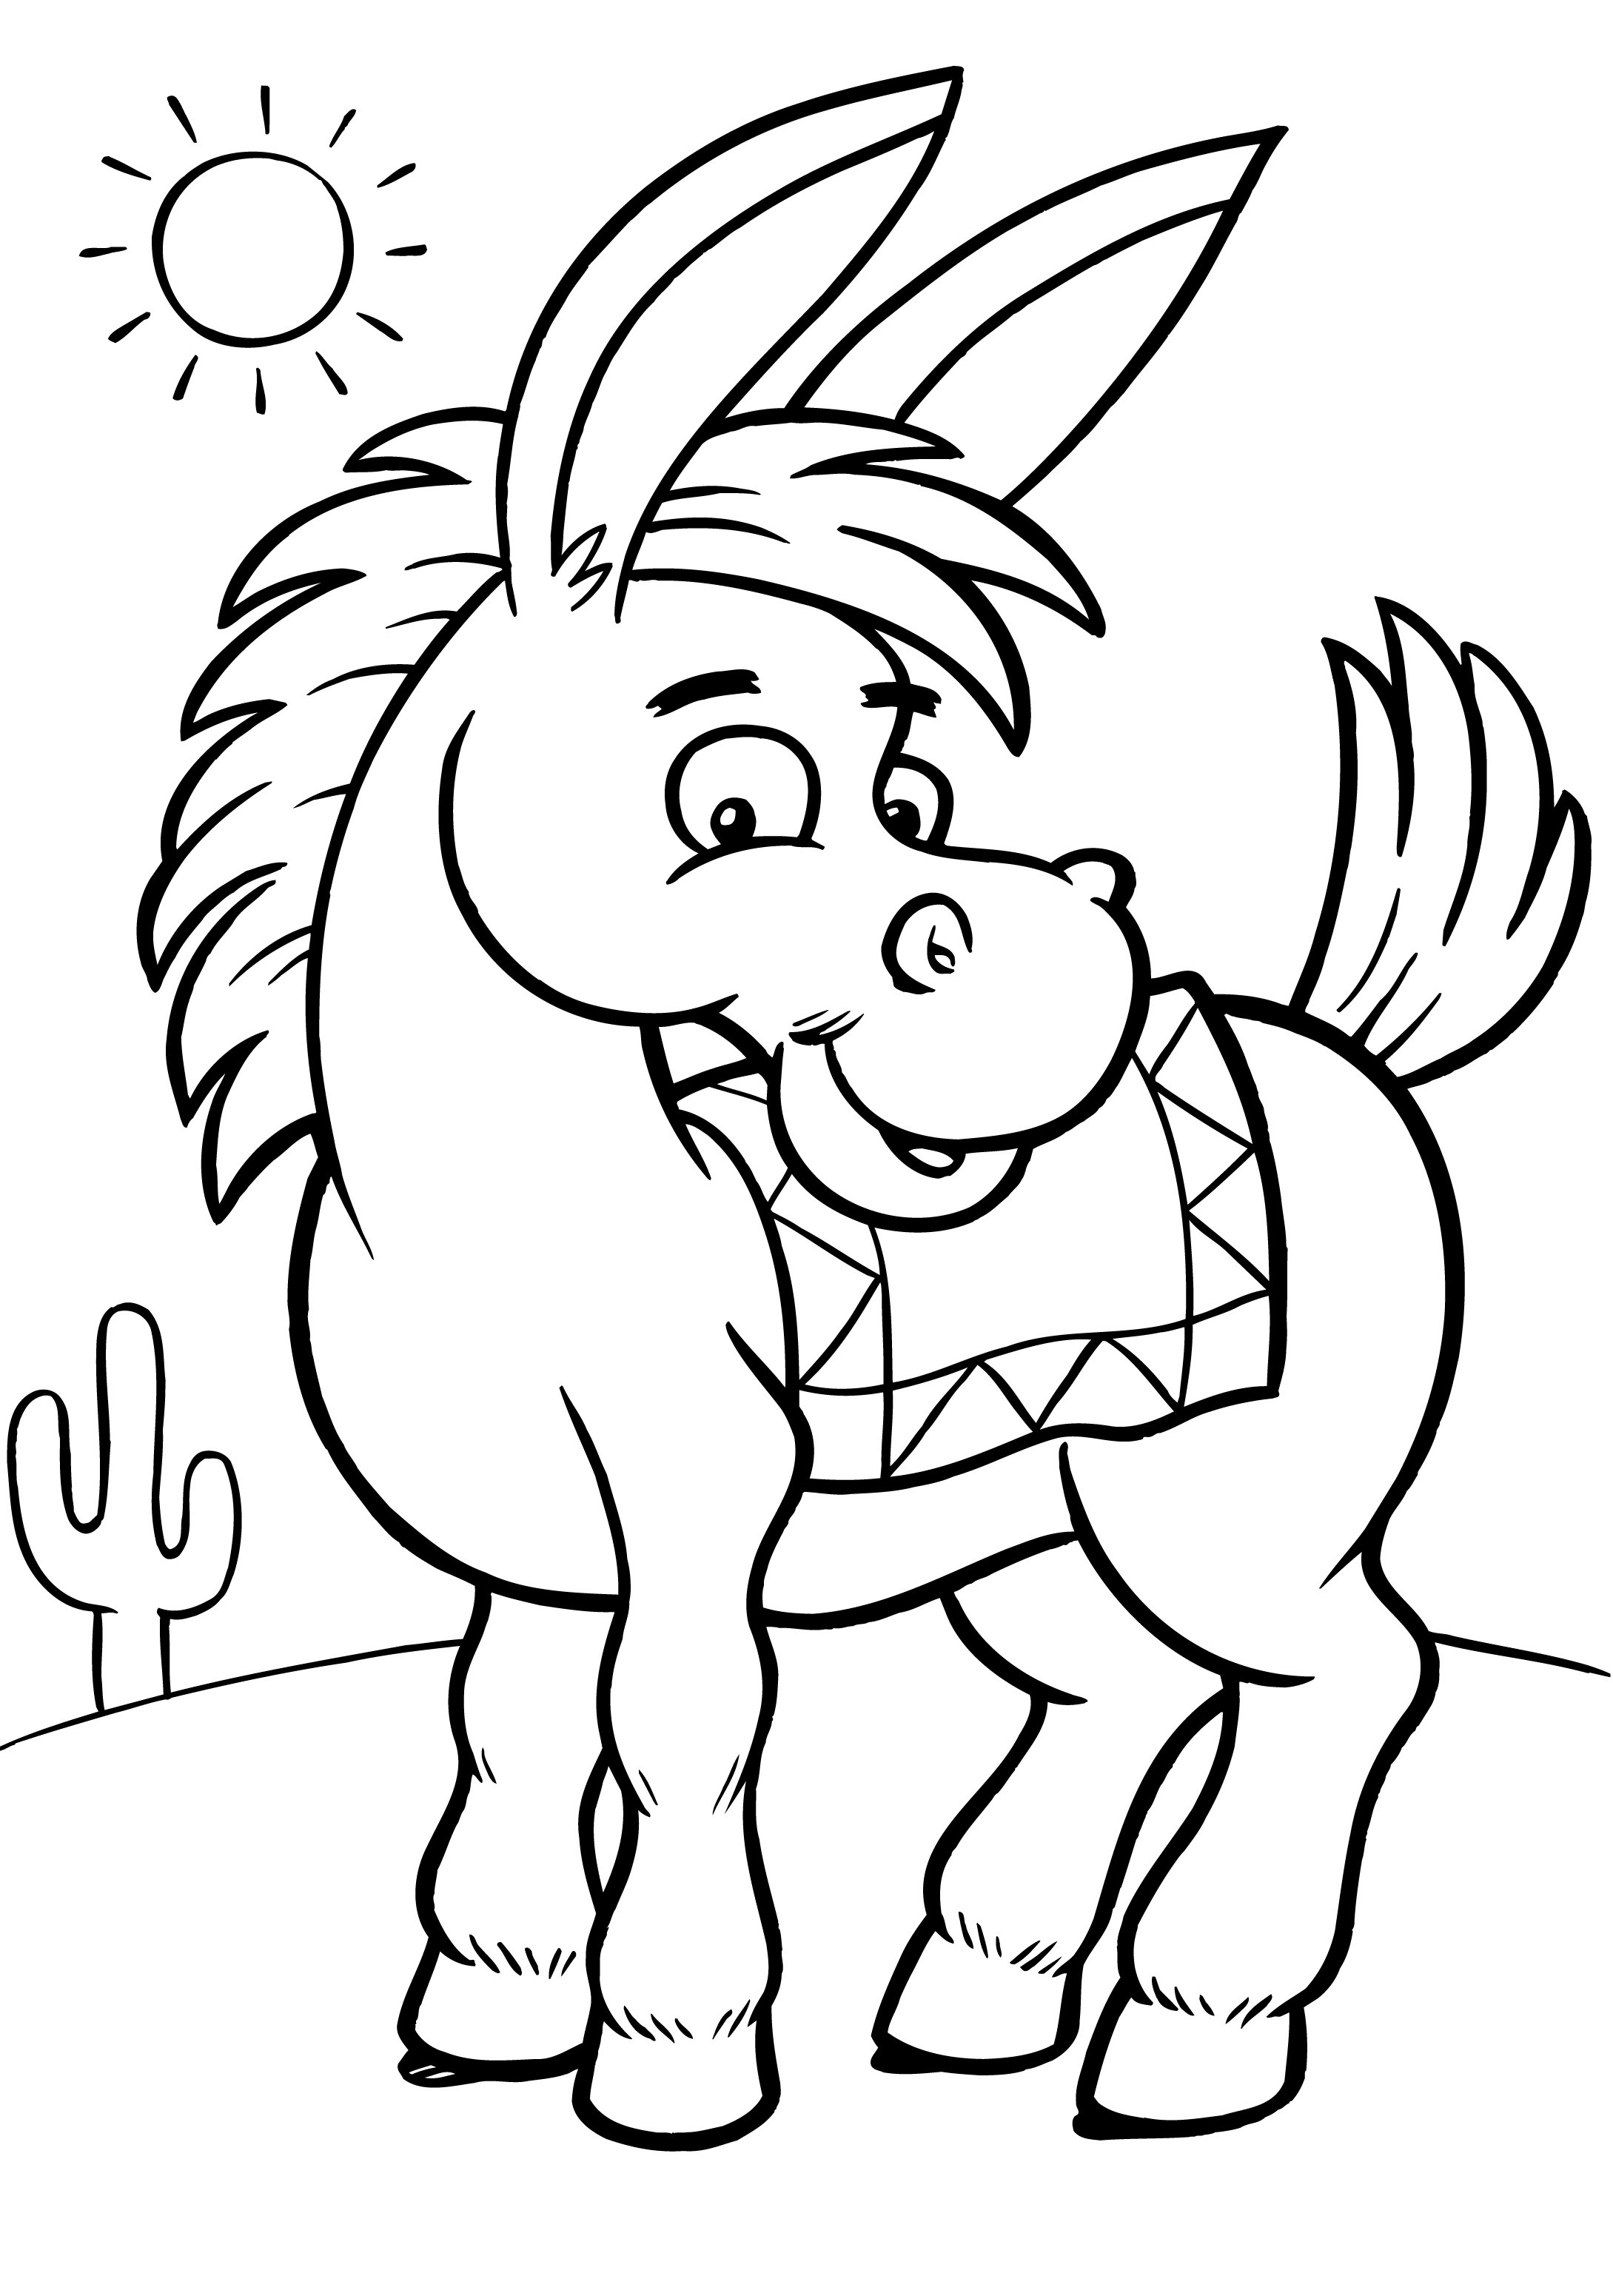 Free Printable Donkey Coloring Pages For Kids   free coloring pages for toddlers